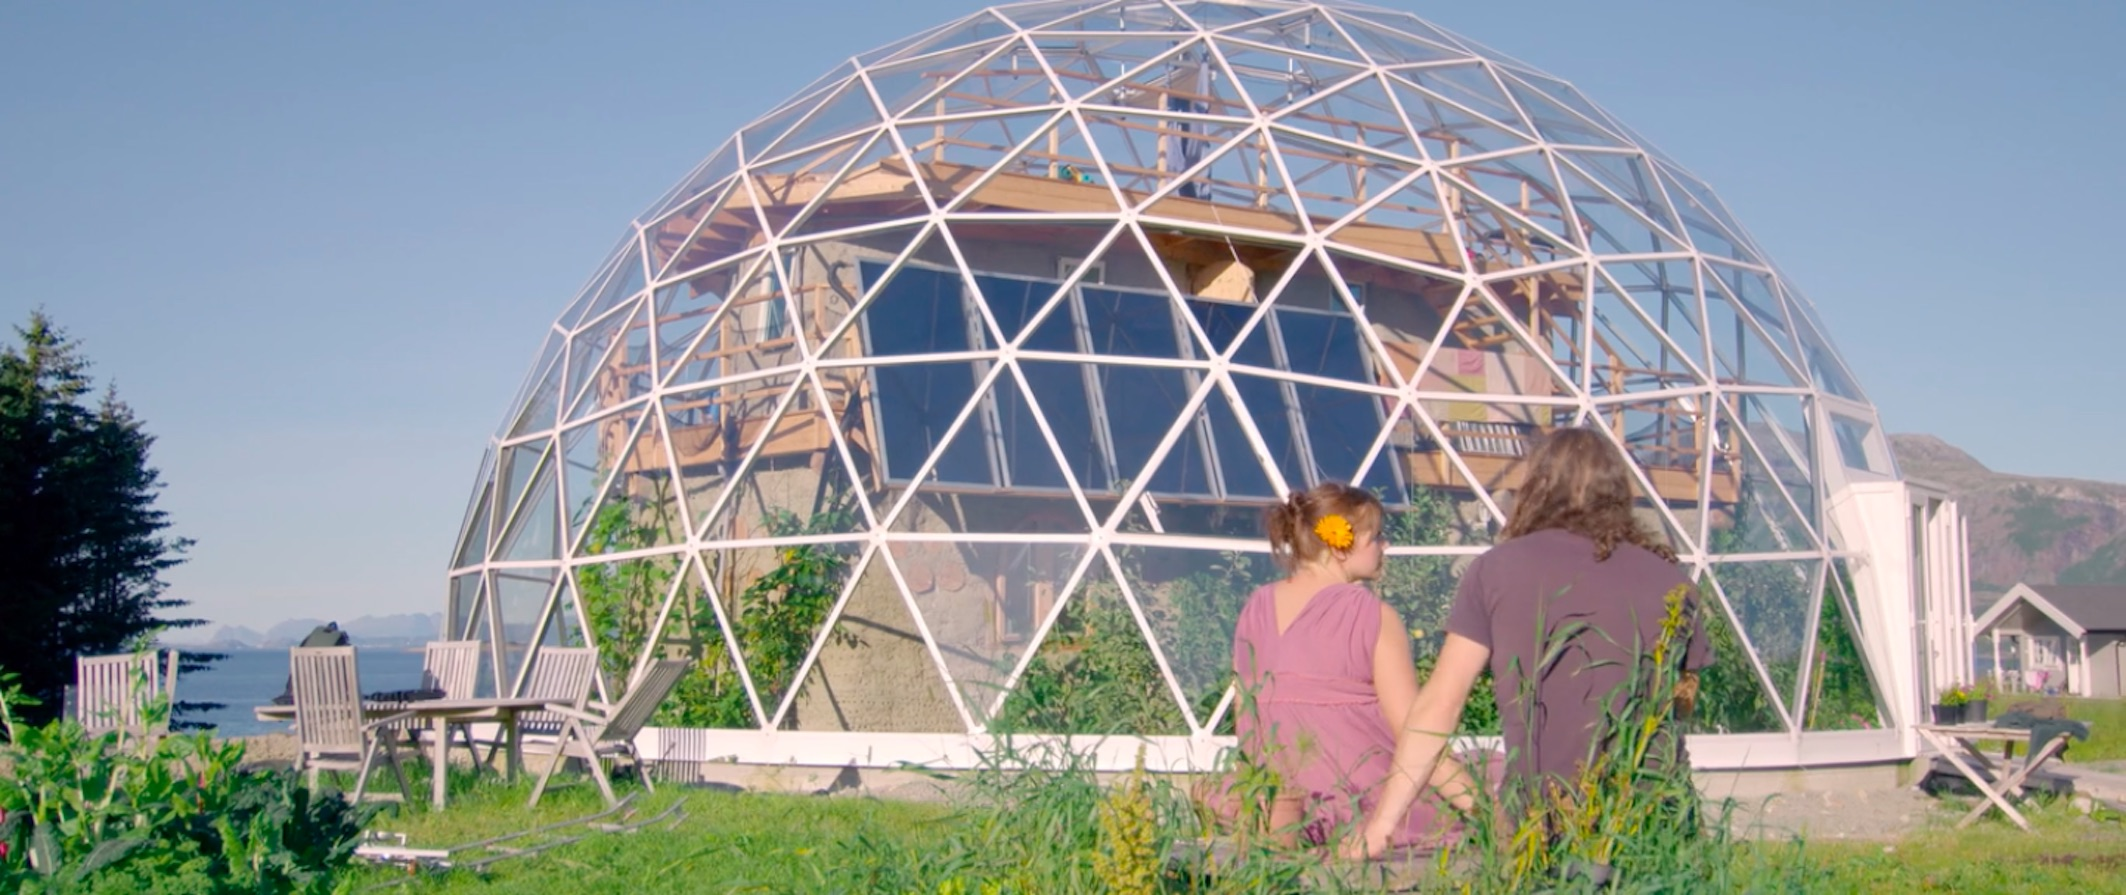 This Family Built Their Own Eco House Under A Solar Dome